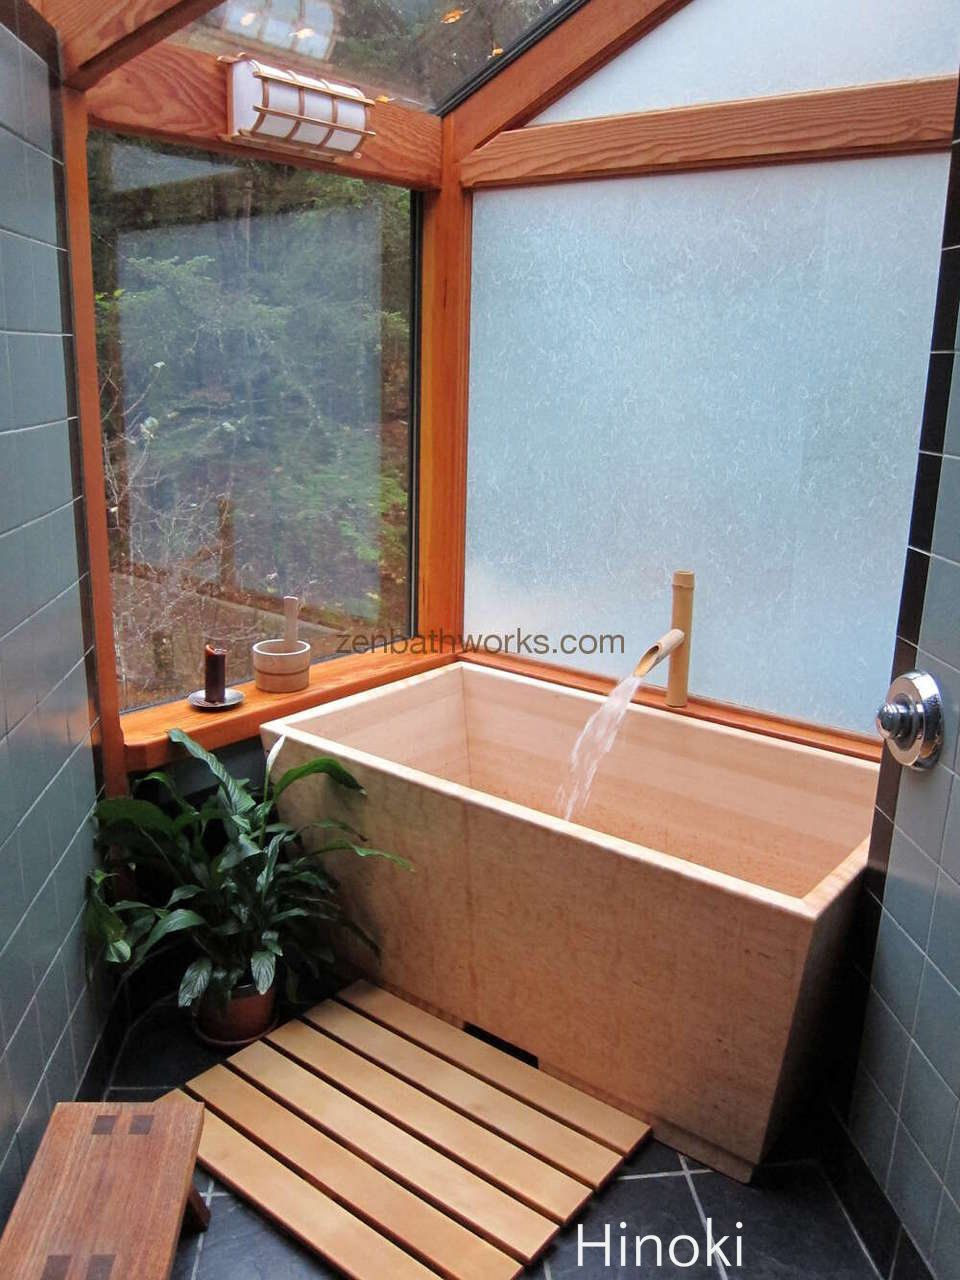 Ofuro | Japanese Soaking Tub | by Zen Bathworks (from $5,200)